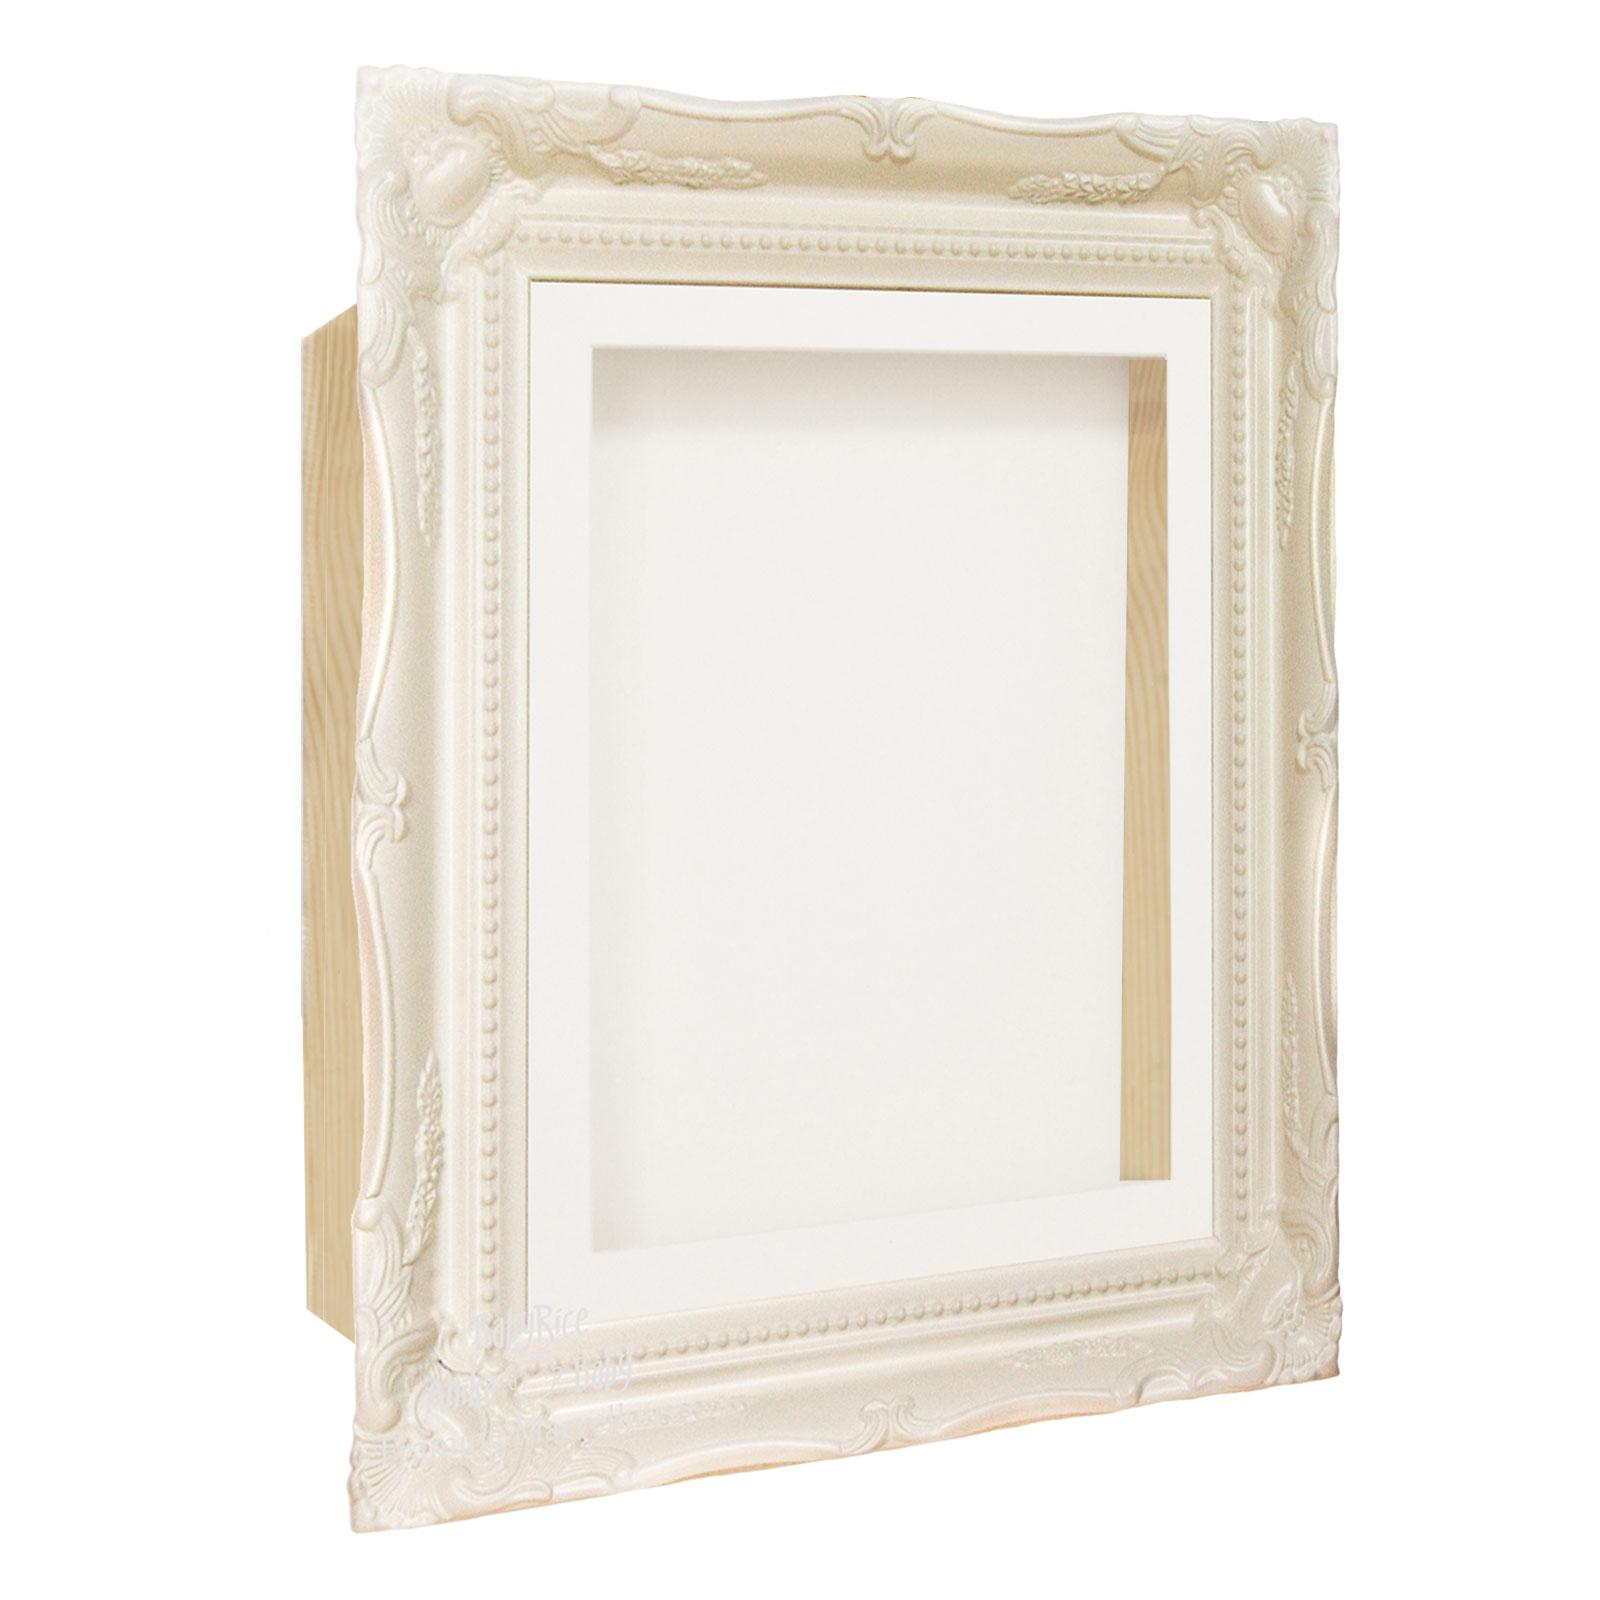 Ornate Rococo White Box Display Frame